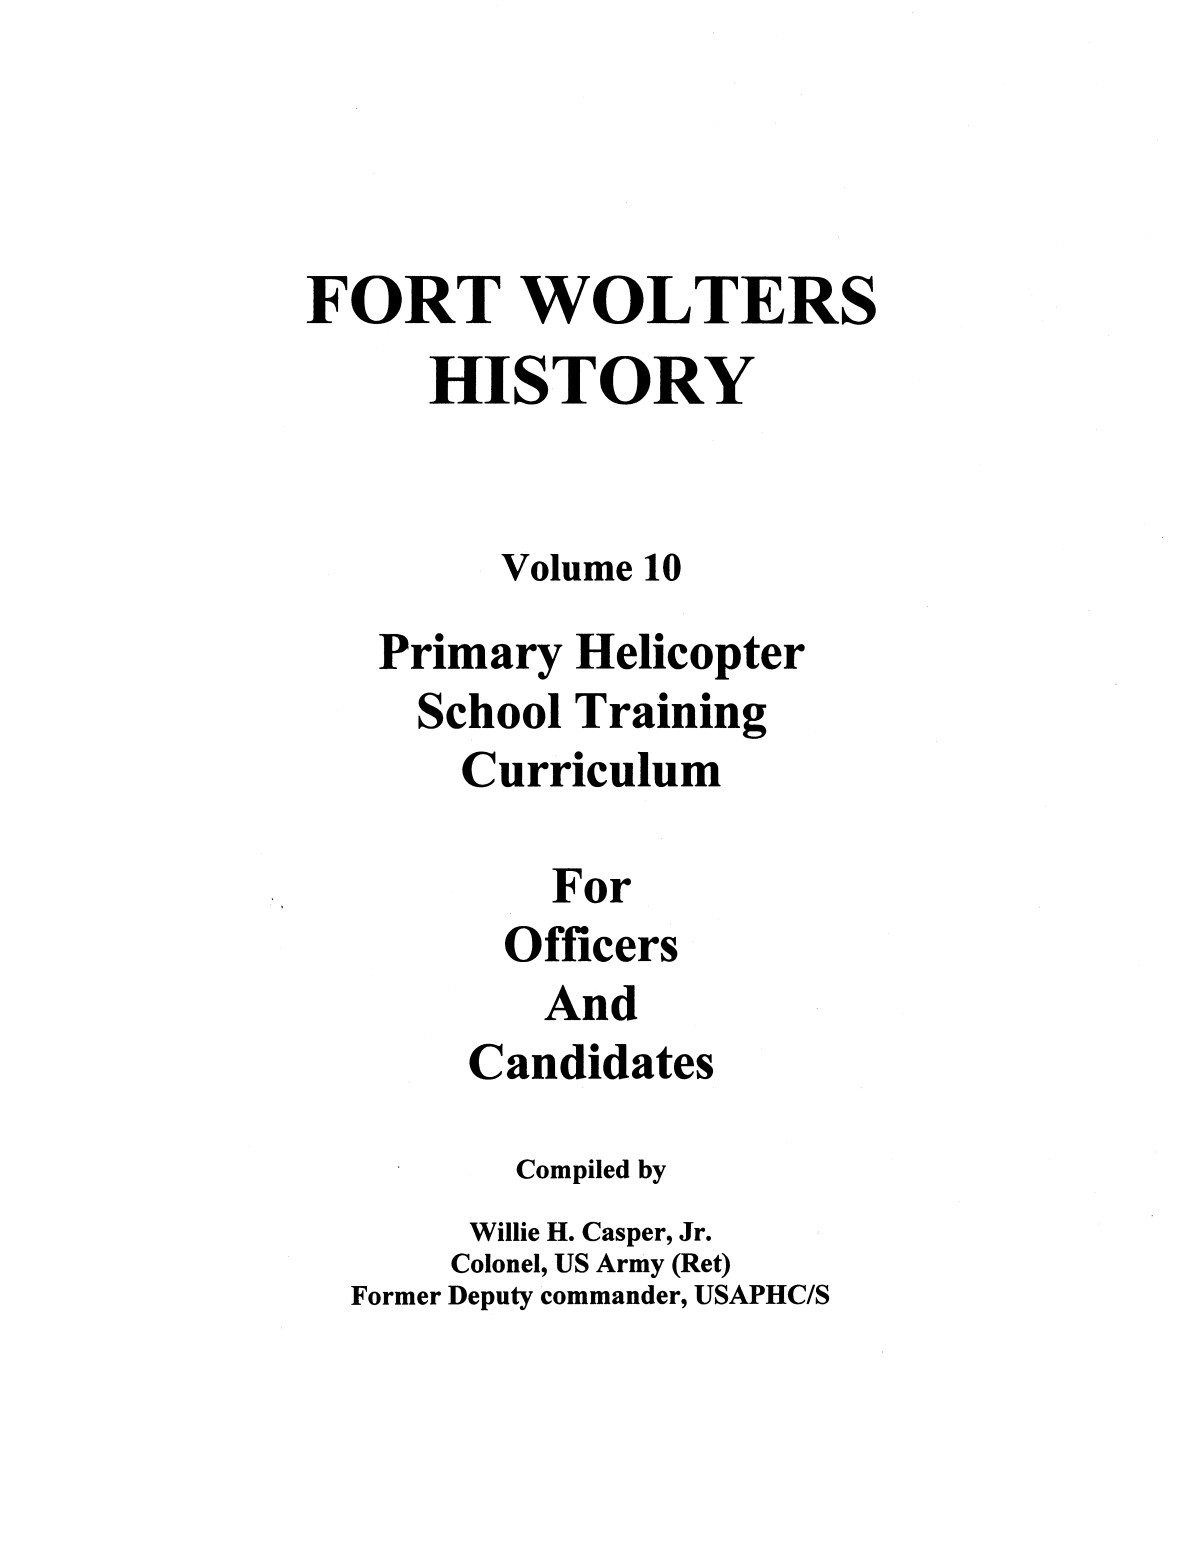 Pictorial History of Fort Wolters, Volume 10: Primary Helicopter School Training Curriculum for Officers and Candidates                                                                                                      [Sequence #]: 1 of 230